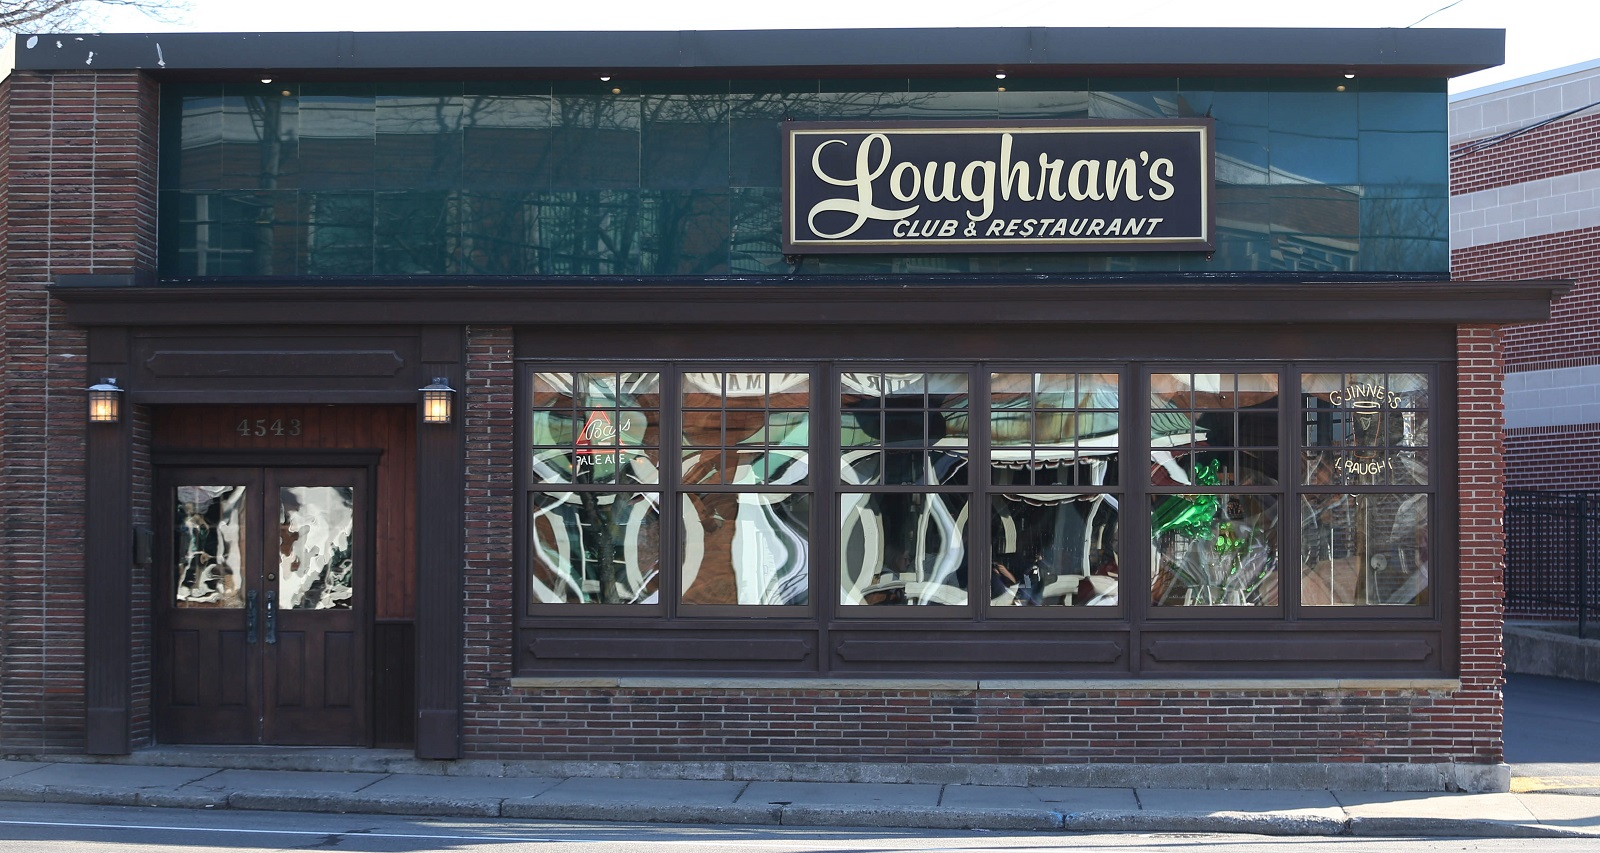 Loughran's is at 4543 Main St. in Snyder. (Sharon Cantillon/Buffalo News)